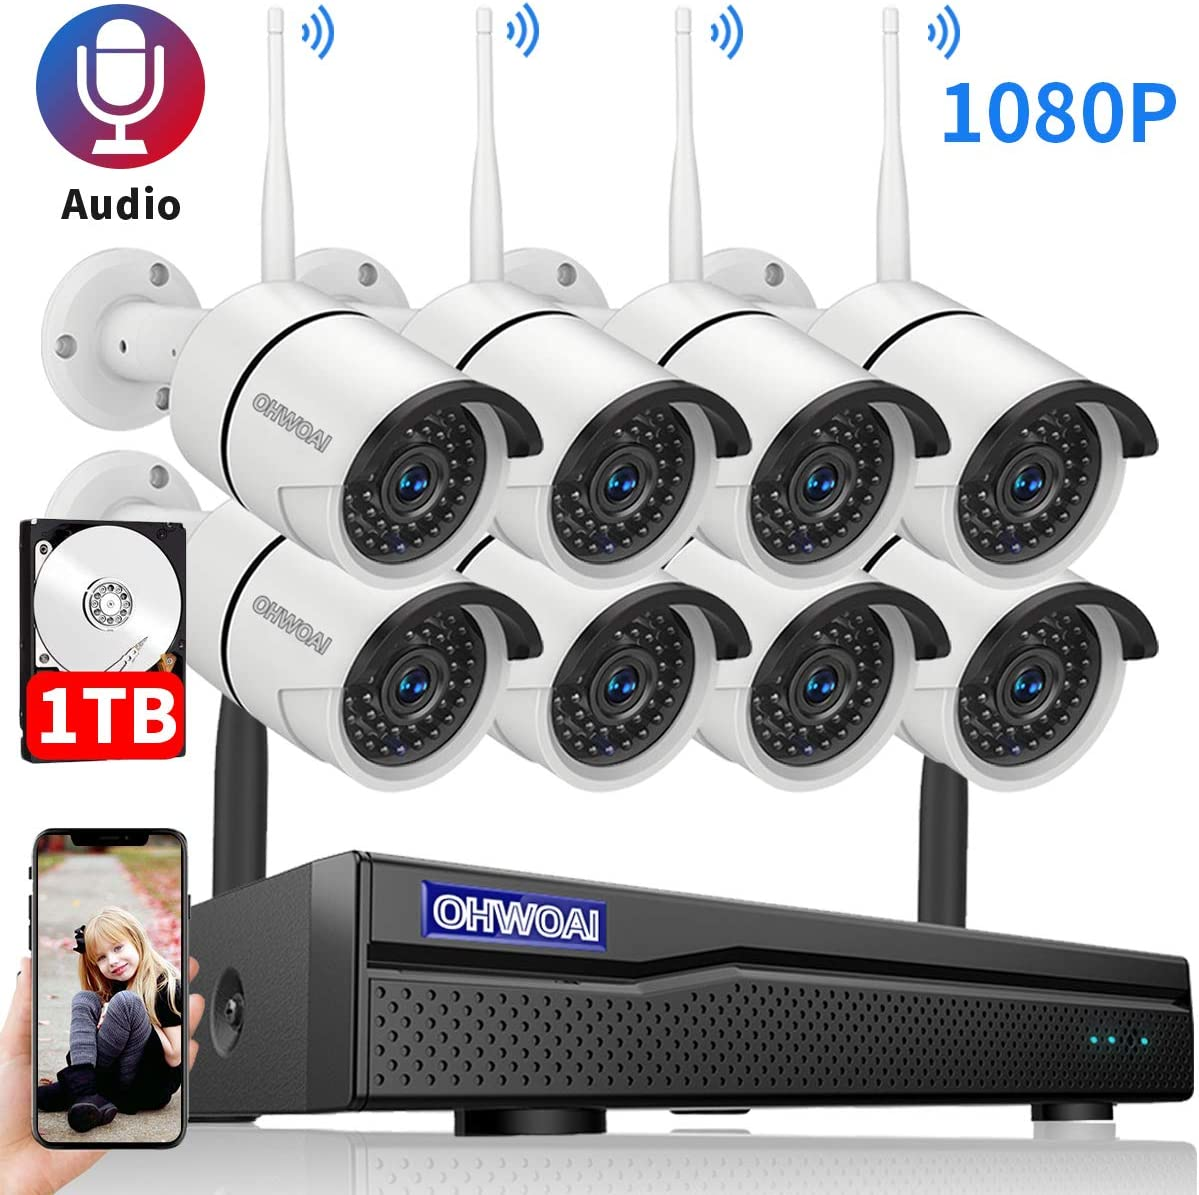 OHWOAI 【2020 Update.Audio】 Security Camera System Wireless, 1TB Hard Drive Pre-Install 8 Channel 1080P NVR, 8PCS 1080P 2.0MP CCTV WI-FI IP Cameras for Homes, HD Surveillance Video Security System.